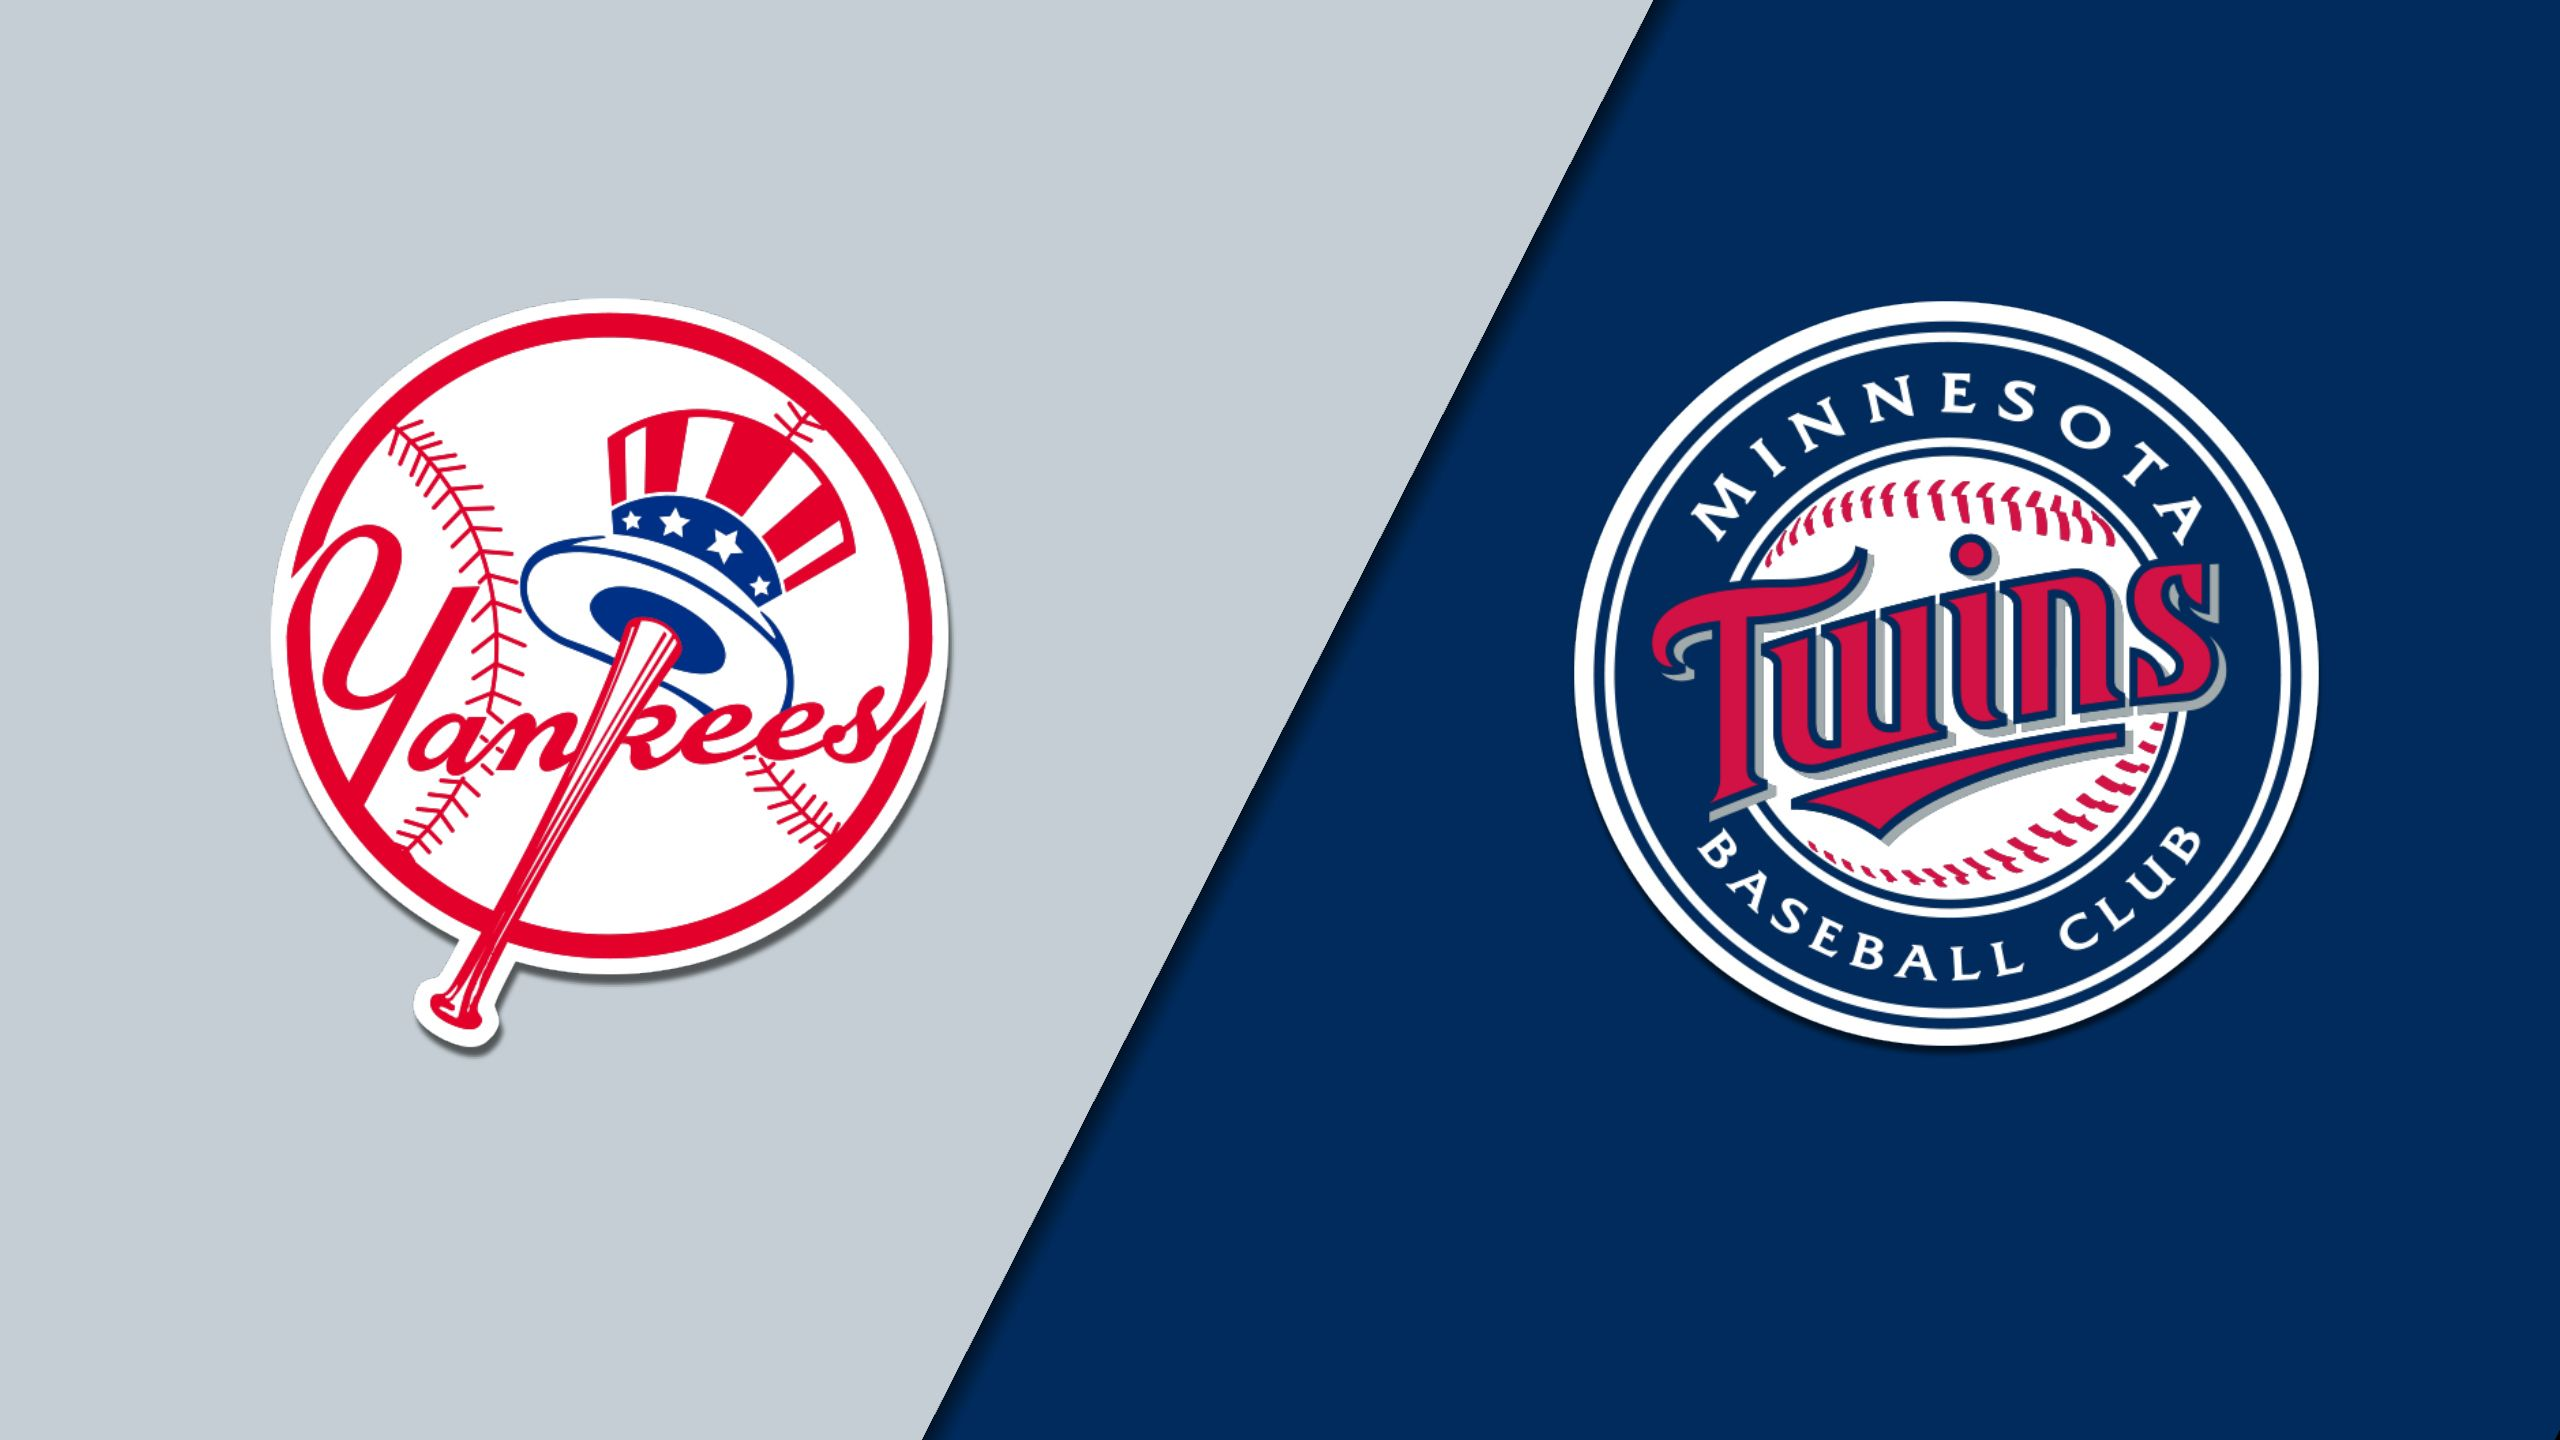 In Spanish - New York Yankees vs. Minnesota Twins